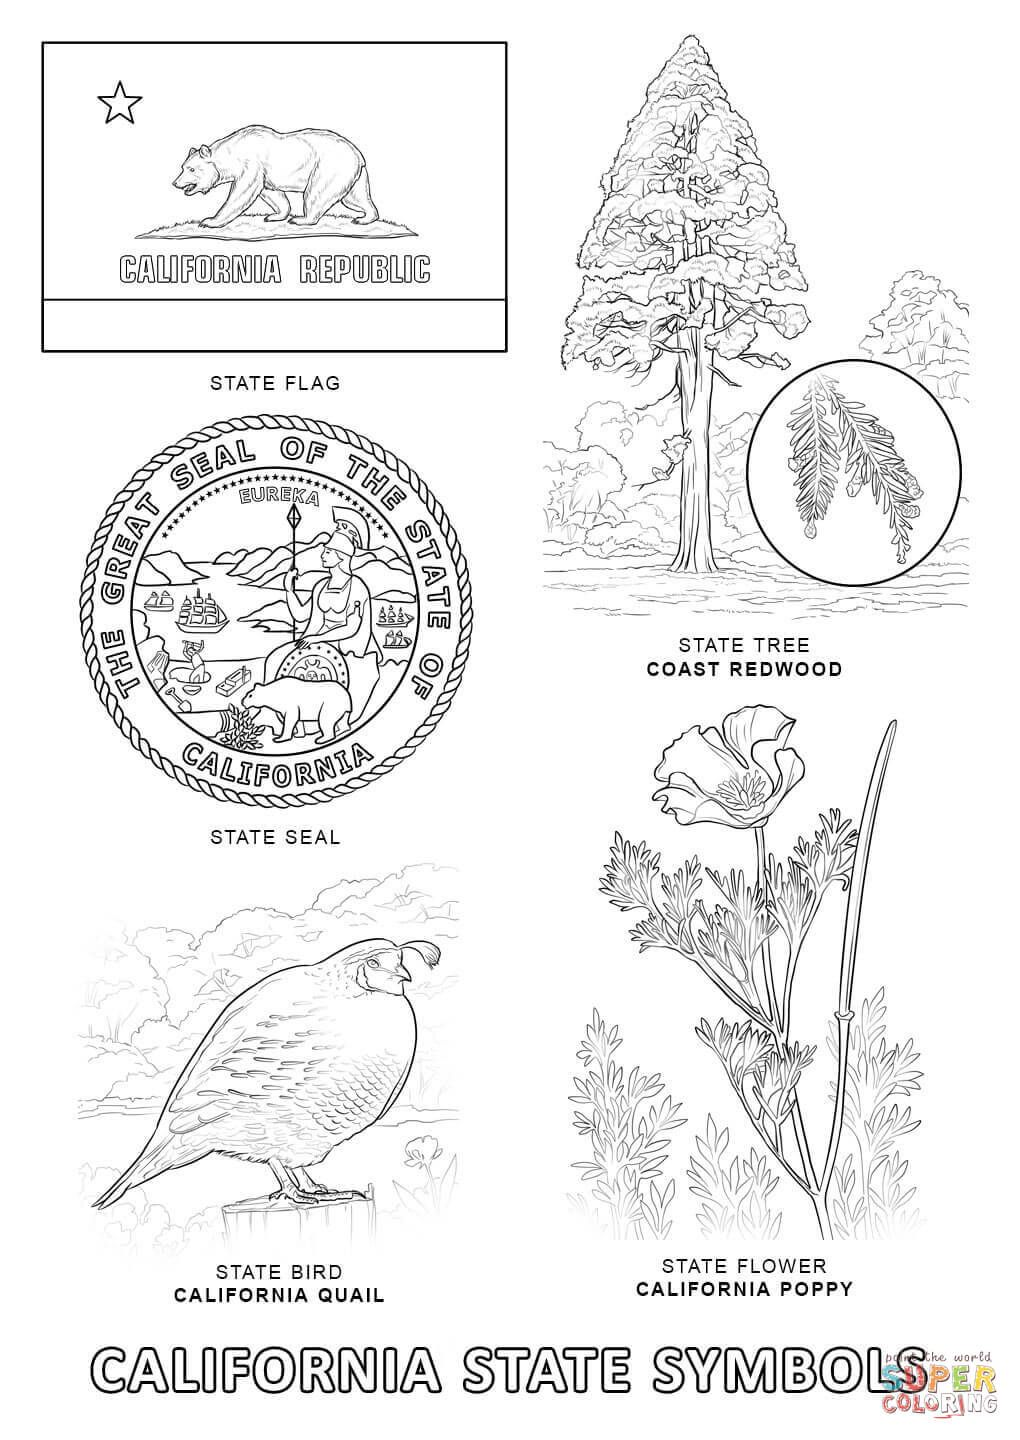 California State Symbols Coloring Page From California Category Select From 27007 Printable Cr State Symbols Flag Coloring Pages Free Printable Coloring Pages